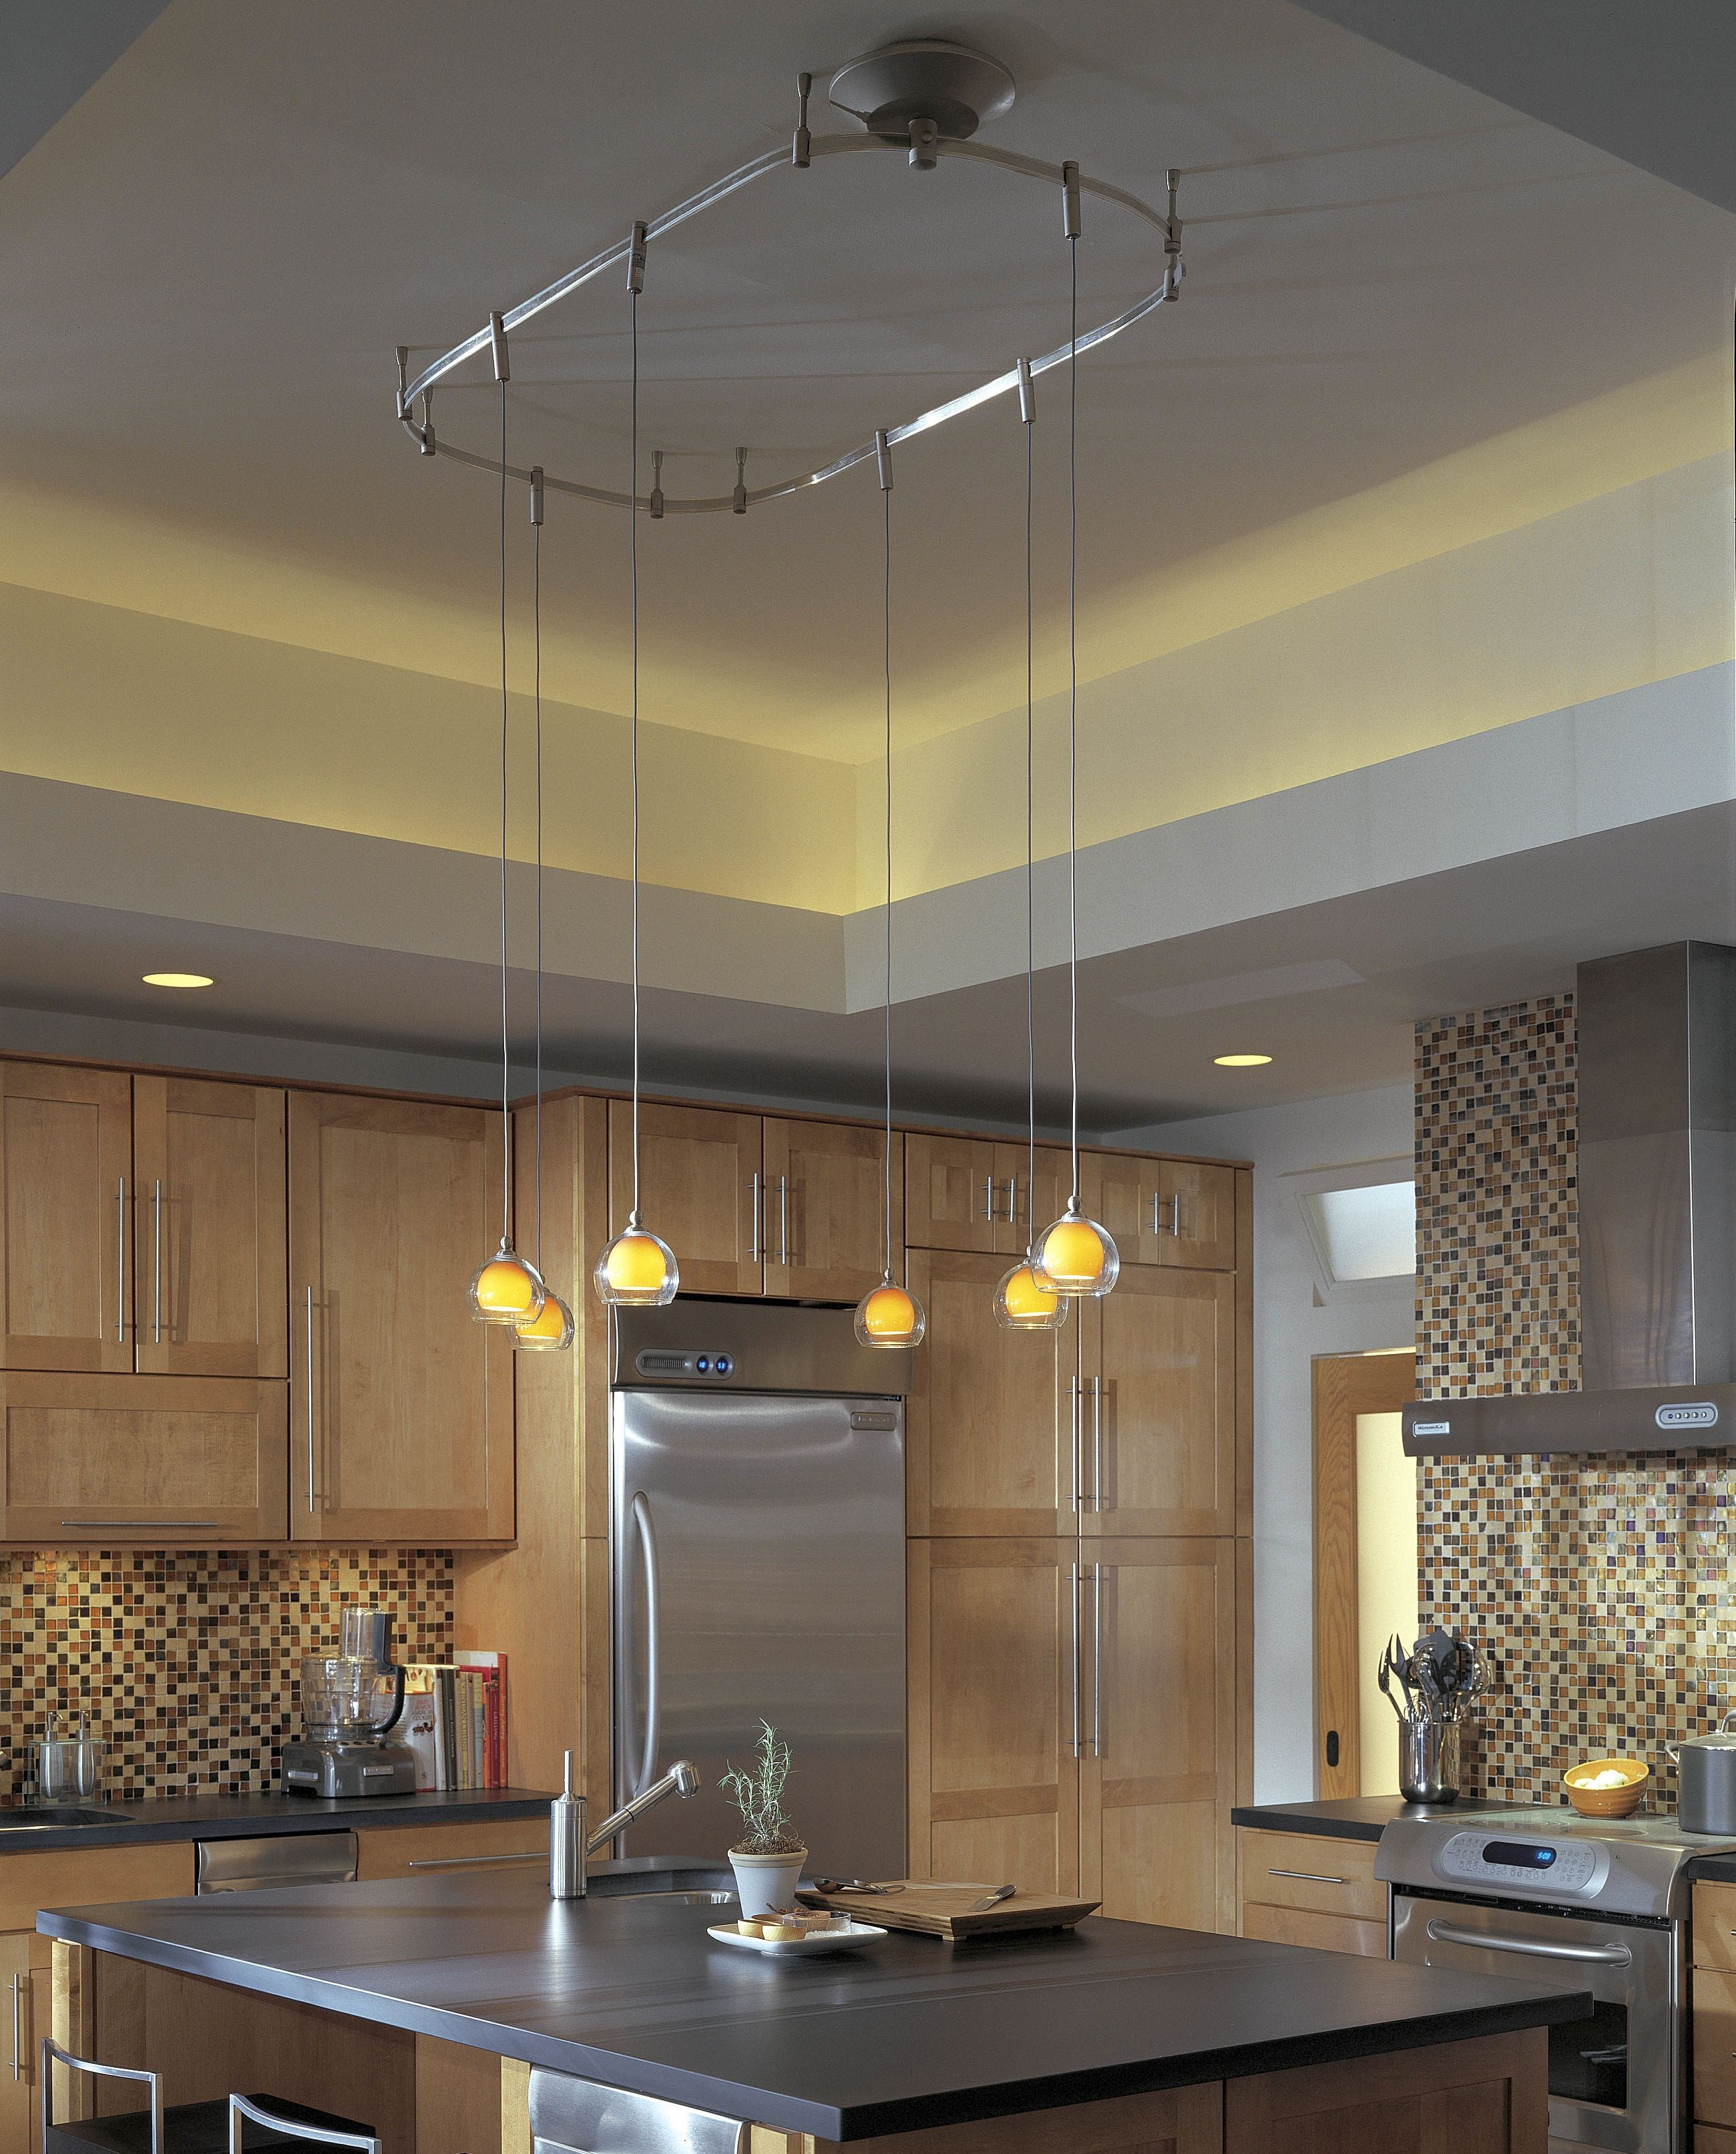 Best 25 Track heads and pendants ideas on Pinterest Light in